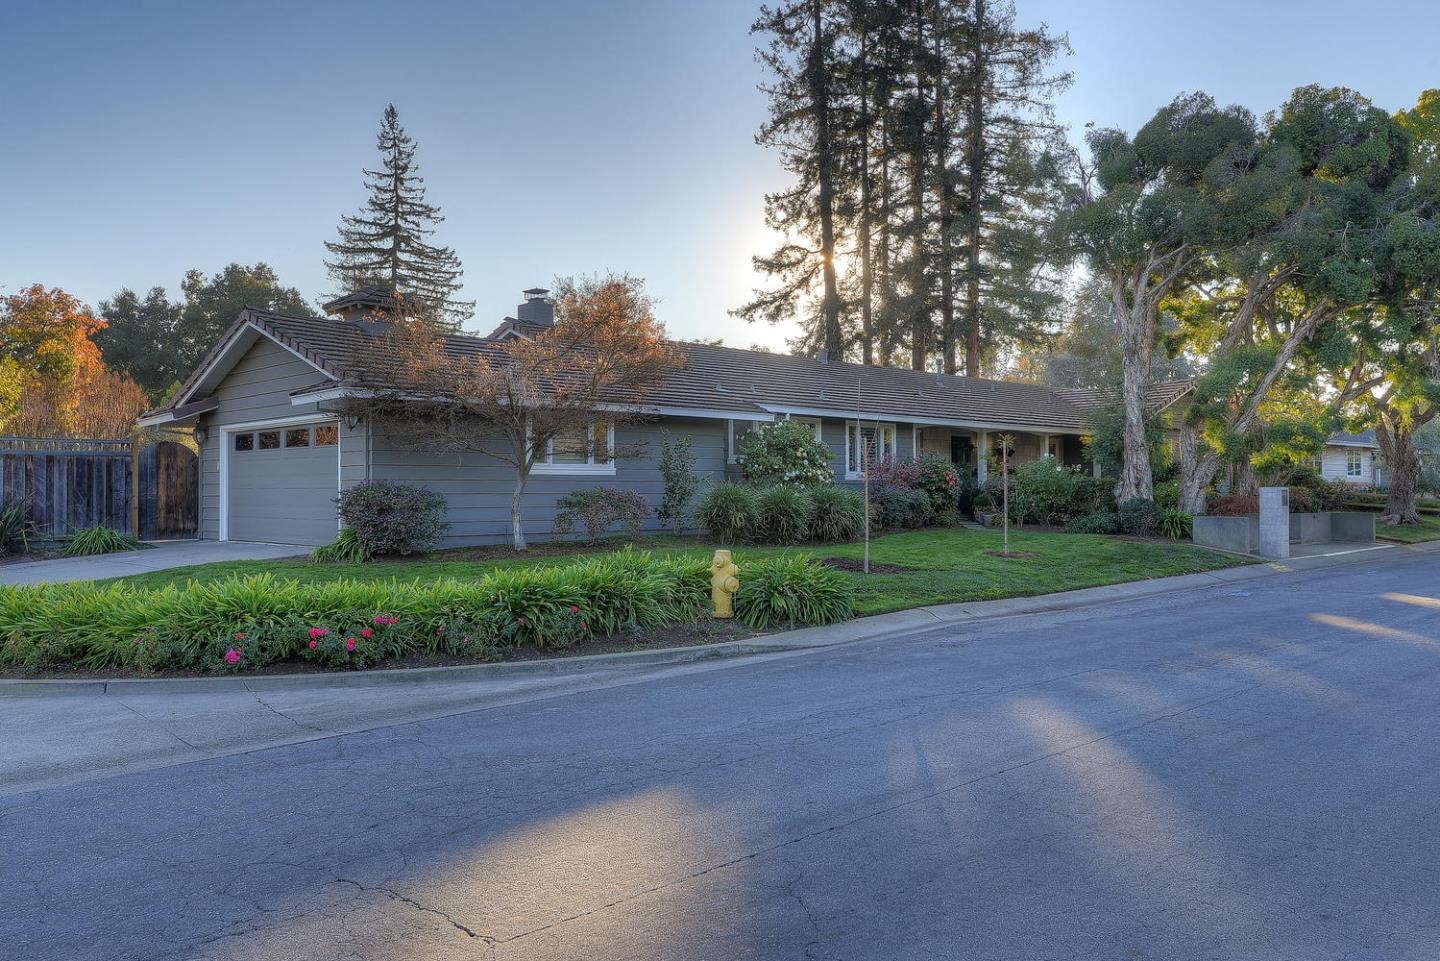 Single Family Home for Sale at 70 Angela Drive 70 Angela Drive Los Altos, California 94022 United States